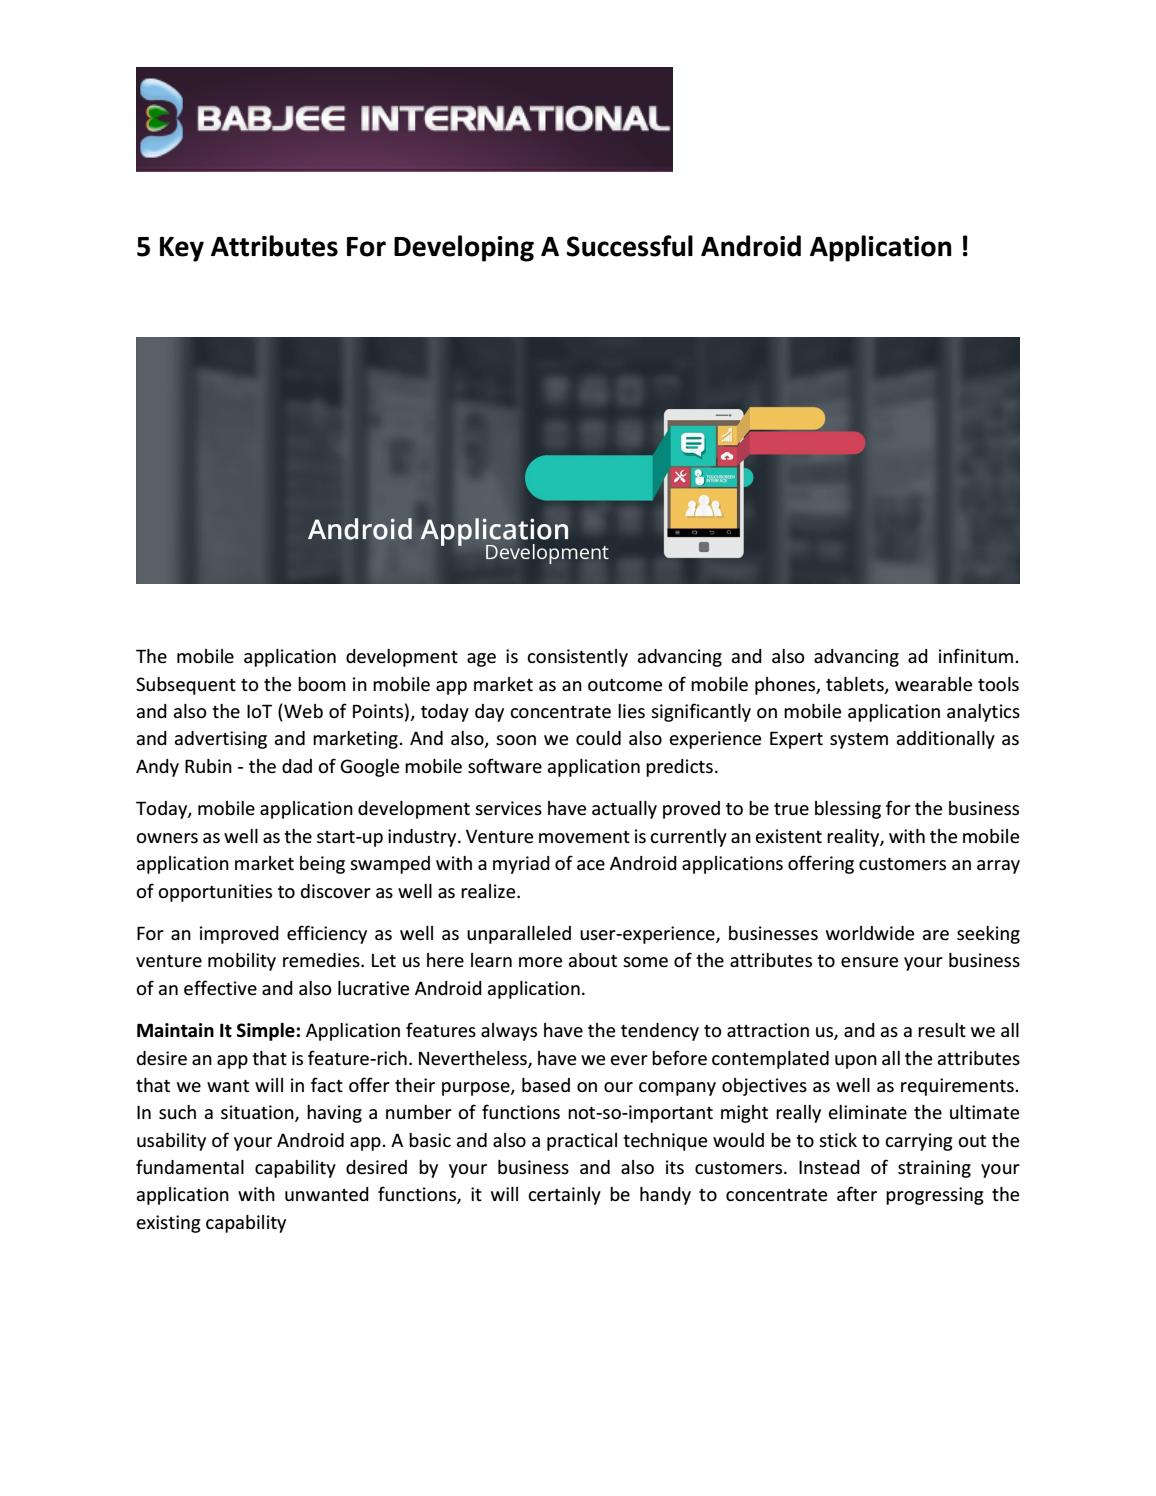 5 Key Attributes For Developing A Successful Android